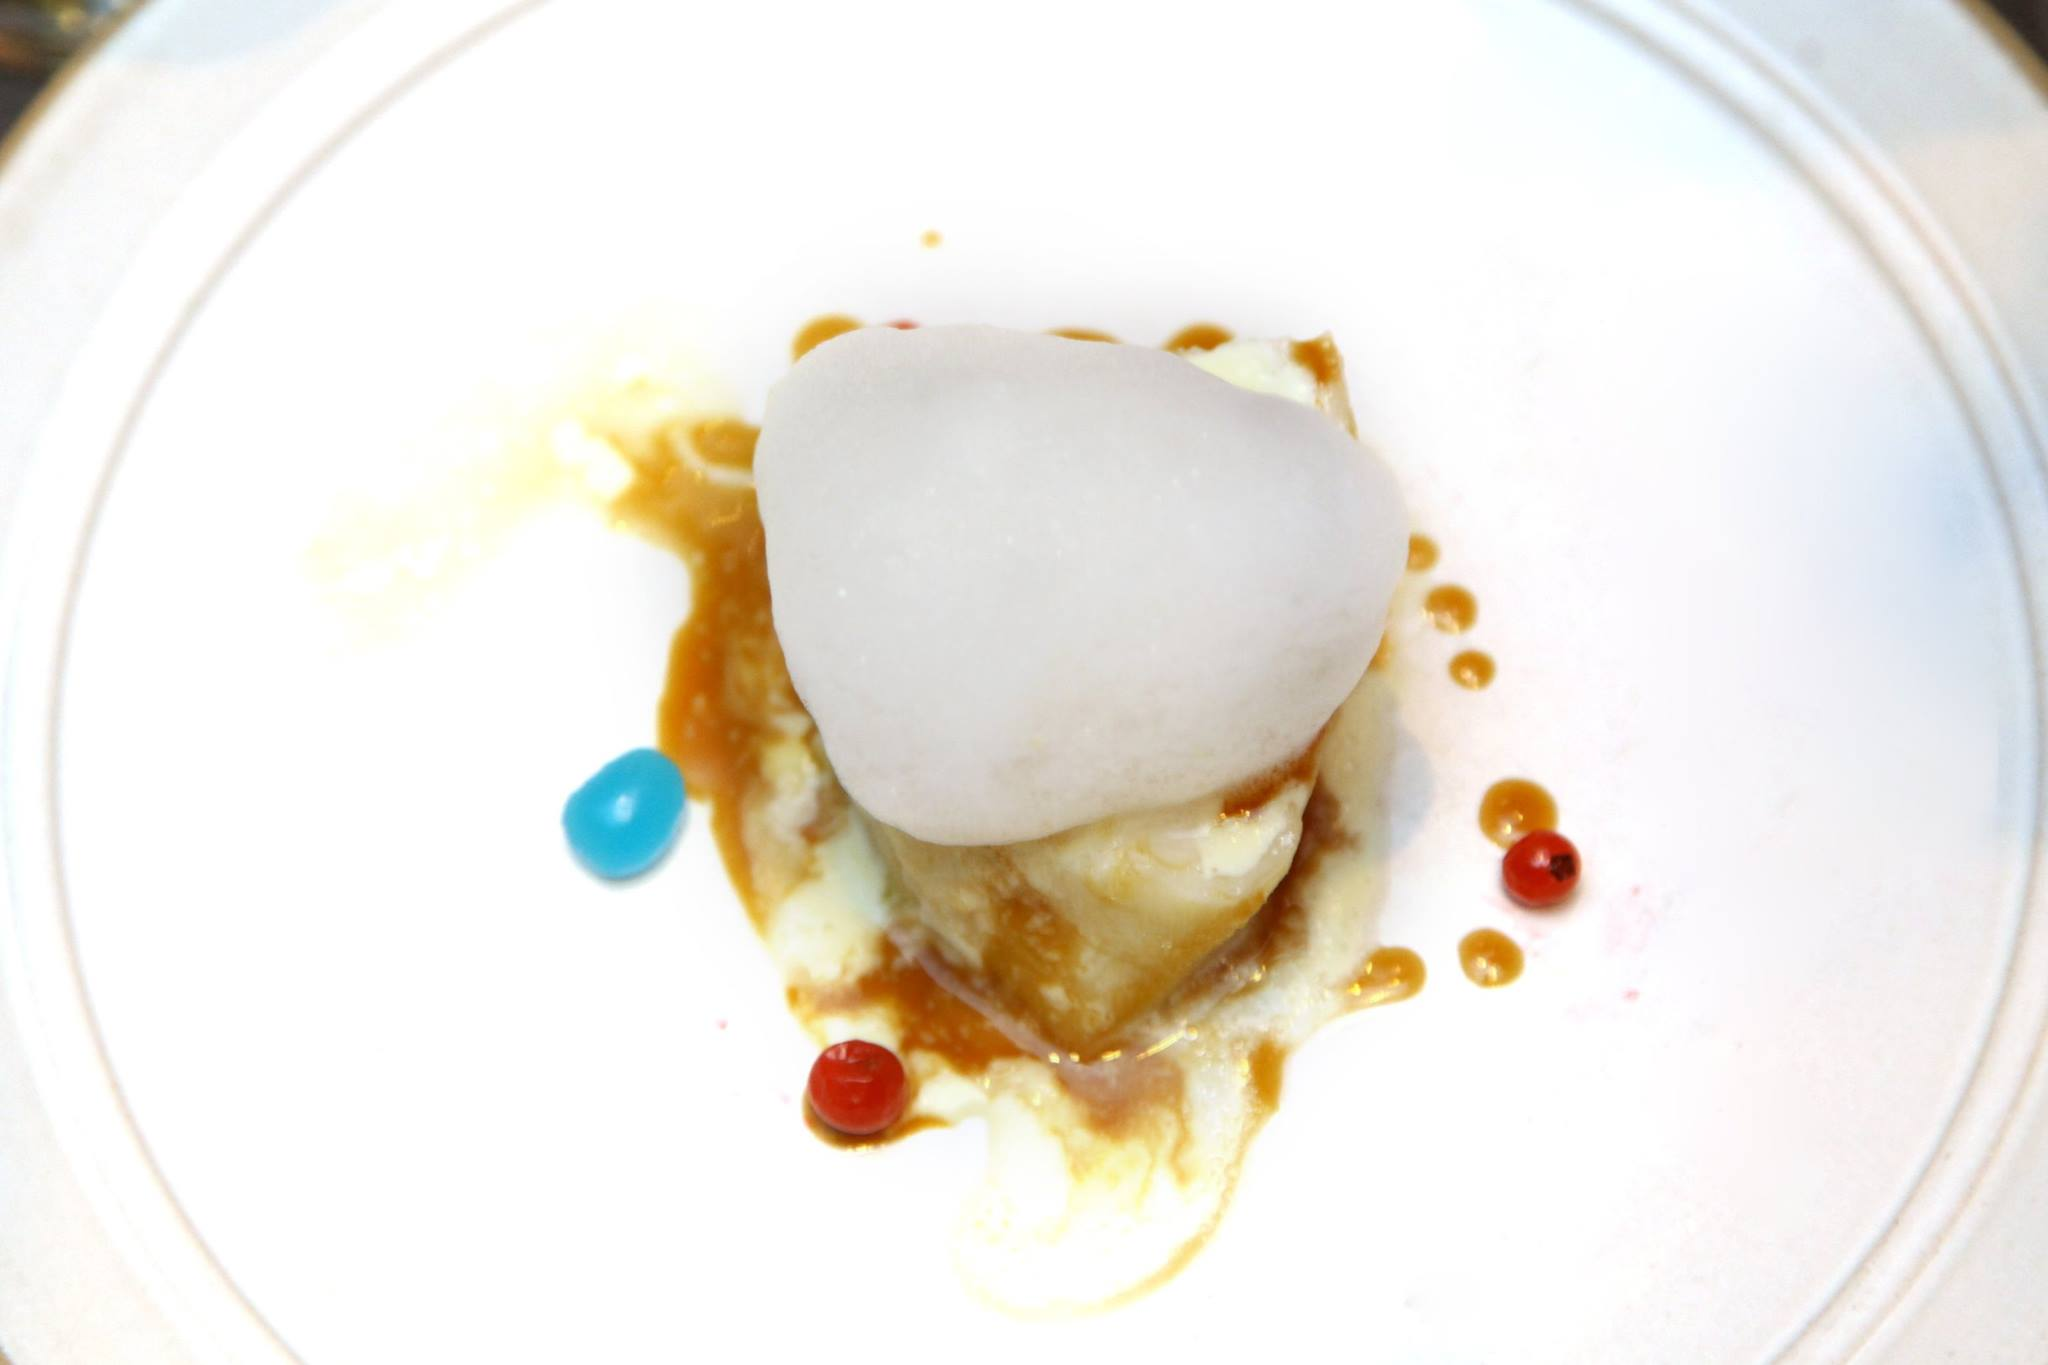 chefs-society-chef-hyun-seok-choi-from-korea-at-chefs-club-smoked-mero-with-cream-soy-butter-sauce-yuzu-foam-and-blue-vinegar-ball